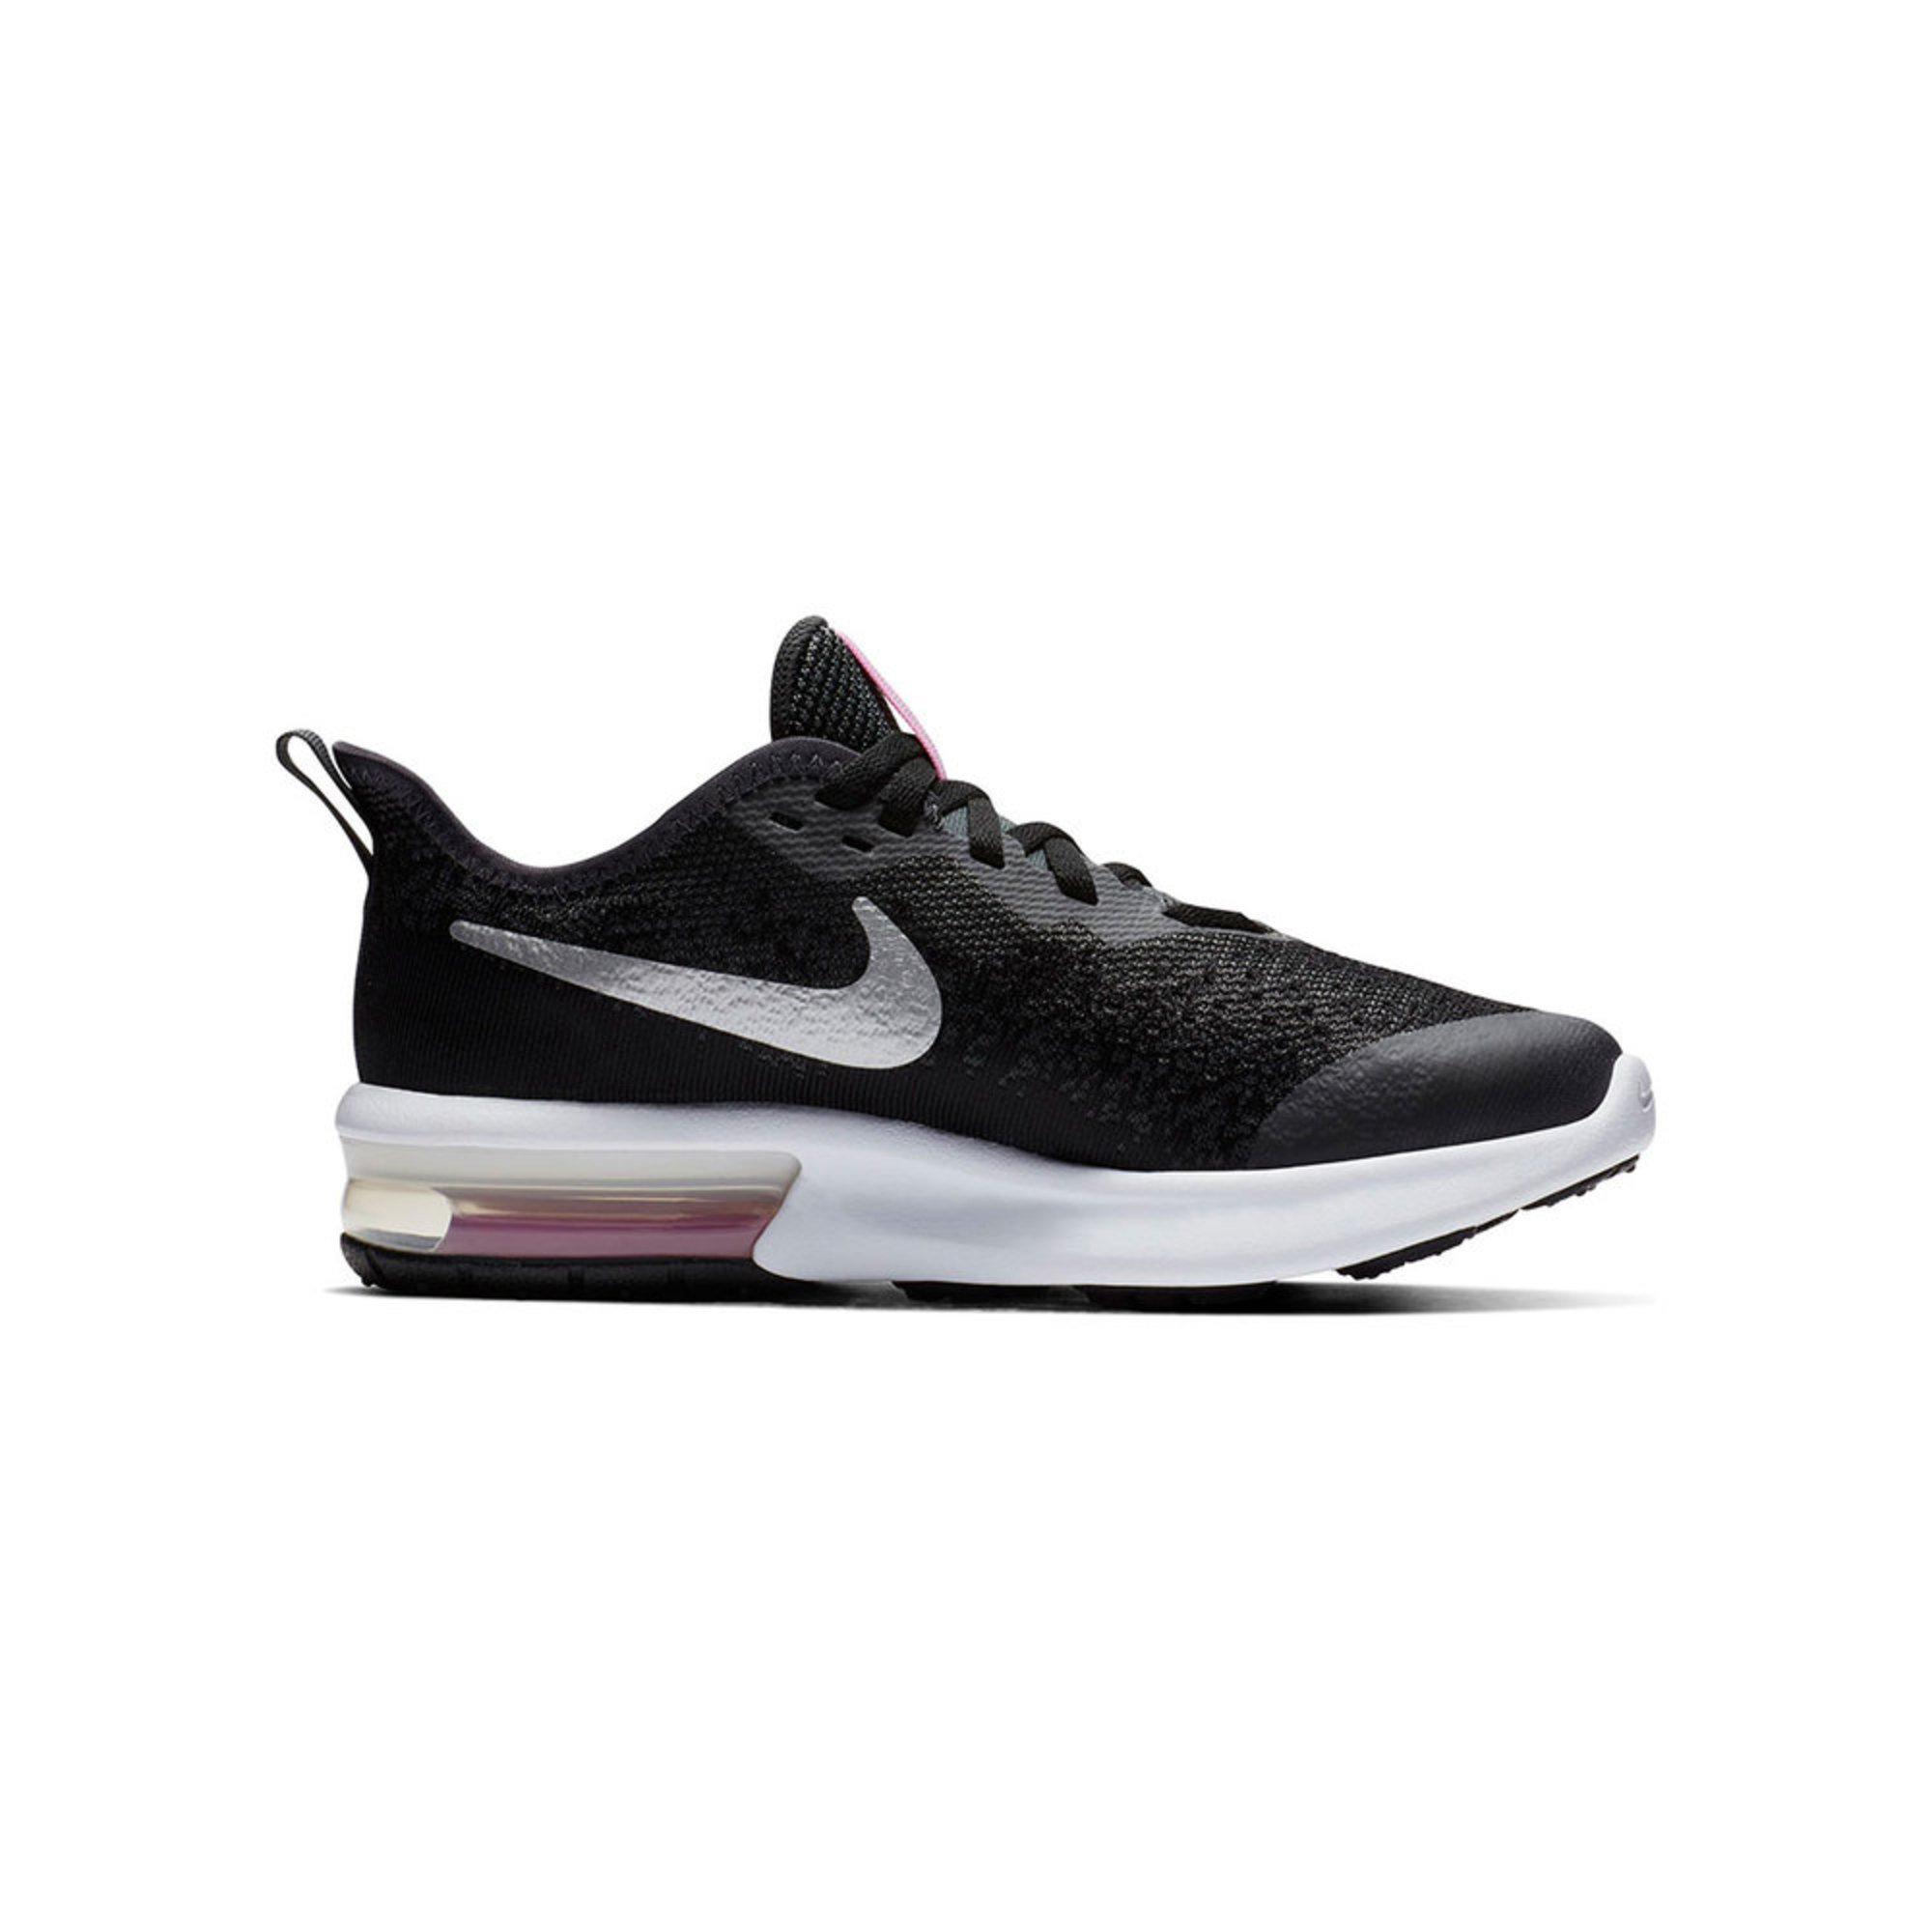 8c729ac61a Nike Girls Air Max Sequent 4 Running Shoe (youth) | Youth Shoes ...